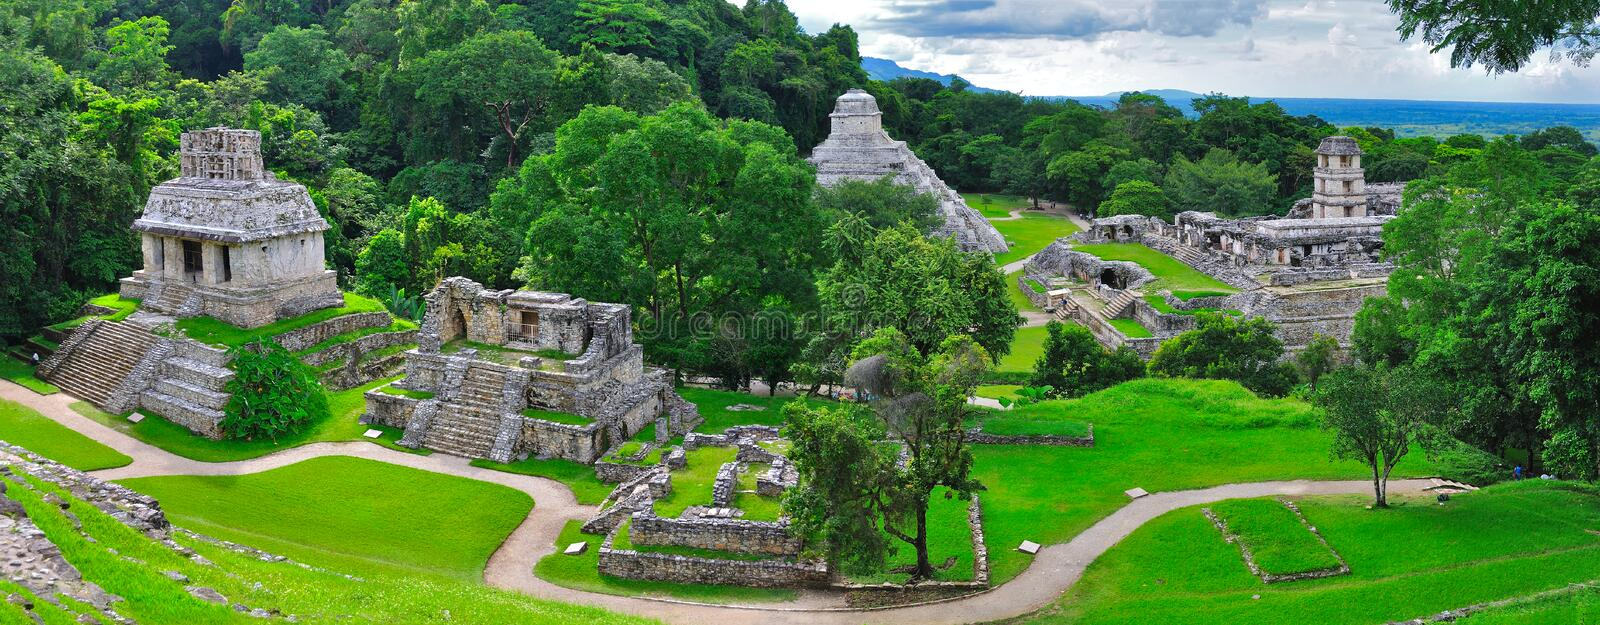 Download Palenque Ancient Maya Temples, Mexico Stock Image - Image: 16709611